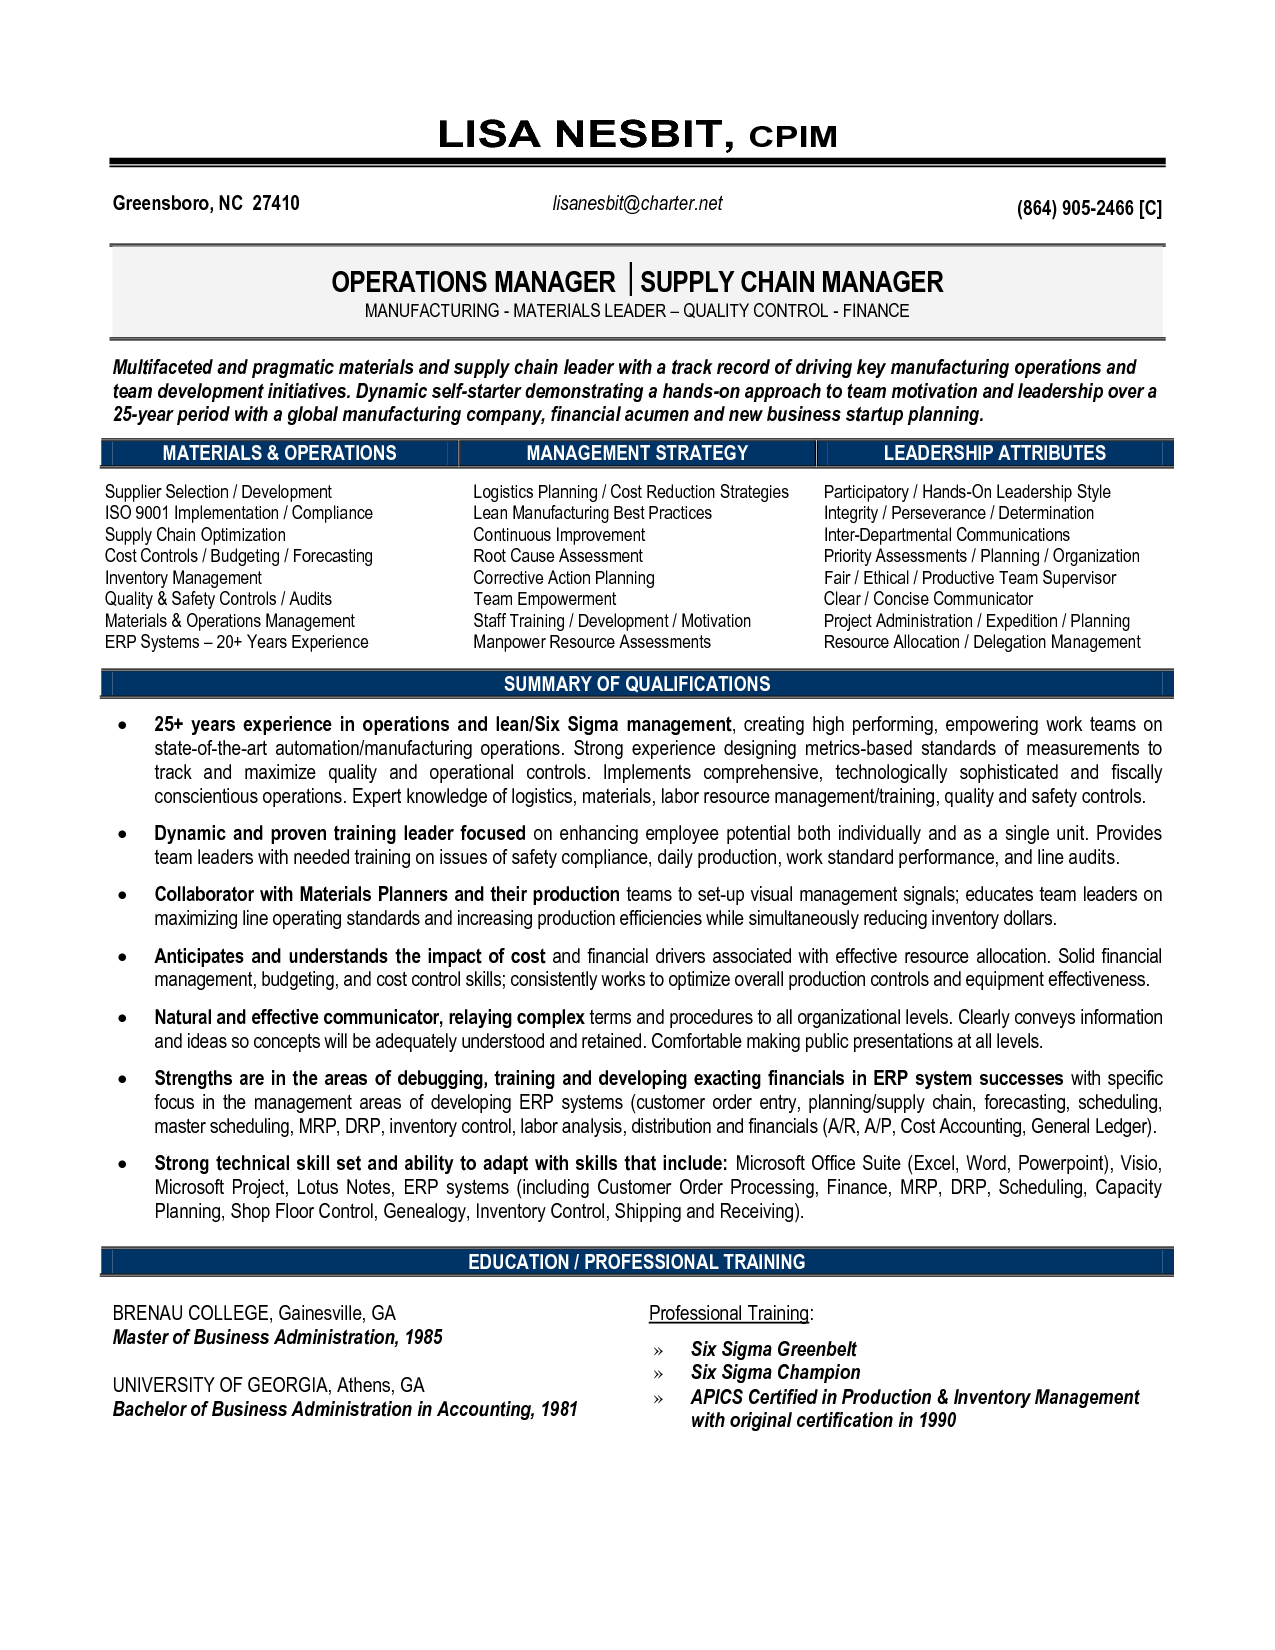 Supply Chain Manager Resume Objective Urgup Kapook Co